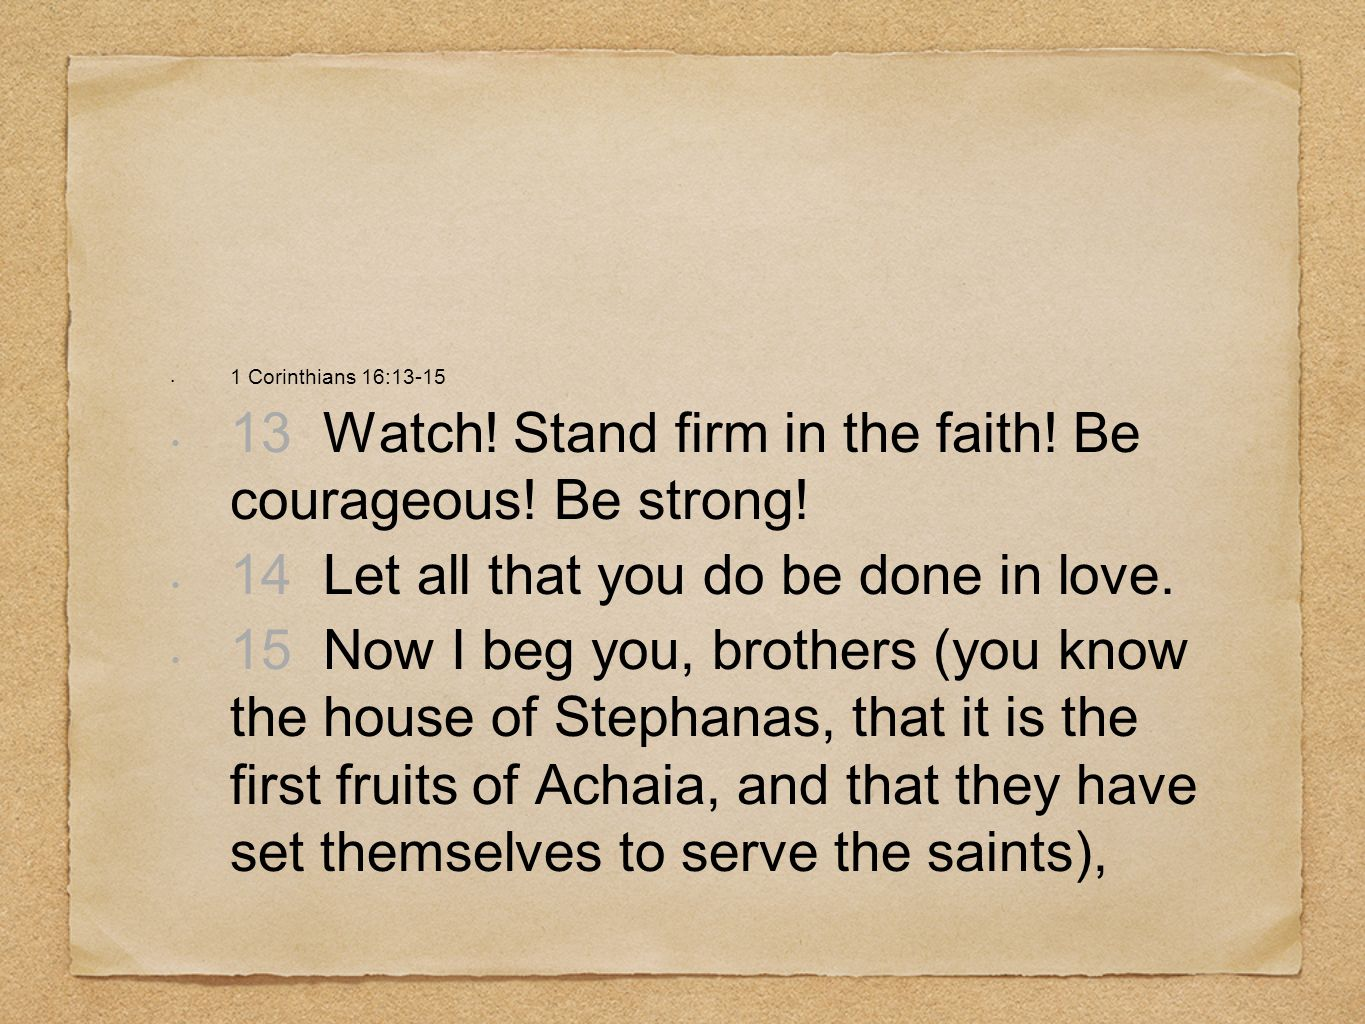 1 Corinthians 16:13-15 13 Watch! Stand firm in the faith! Be courageous! Be strong! 14 Let all that you do be done in love. 15 Now I beg you, brothers